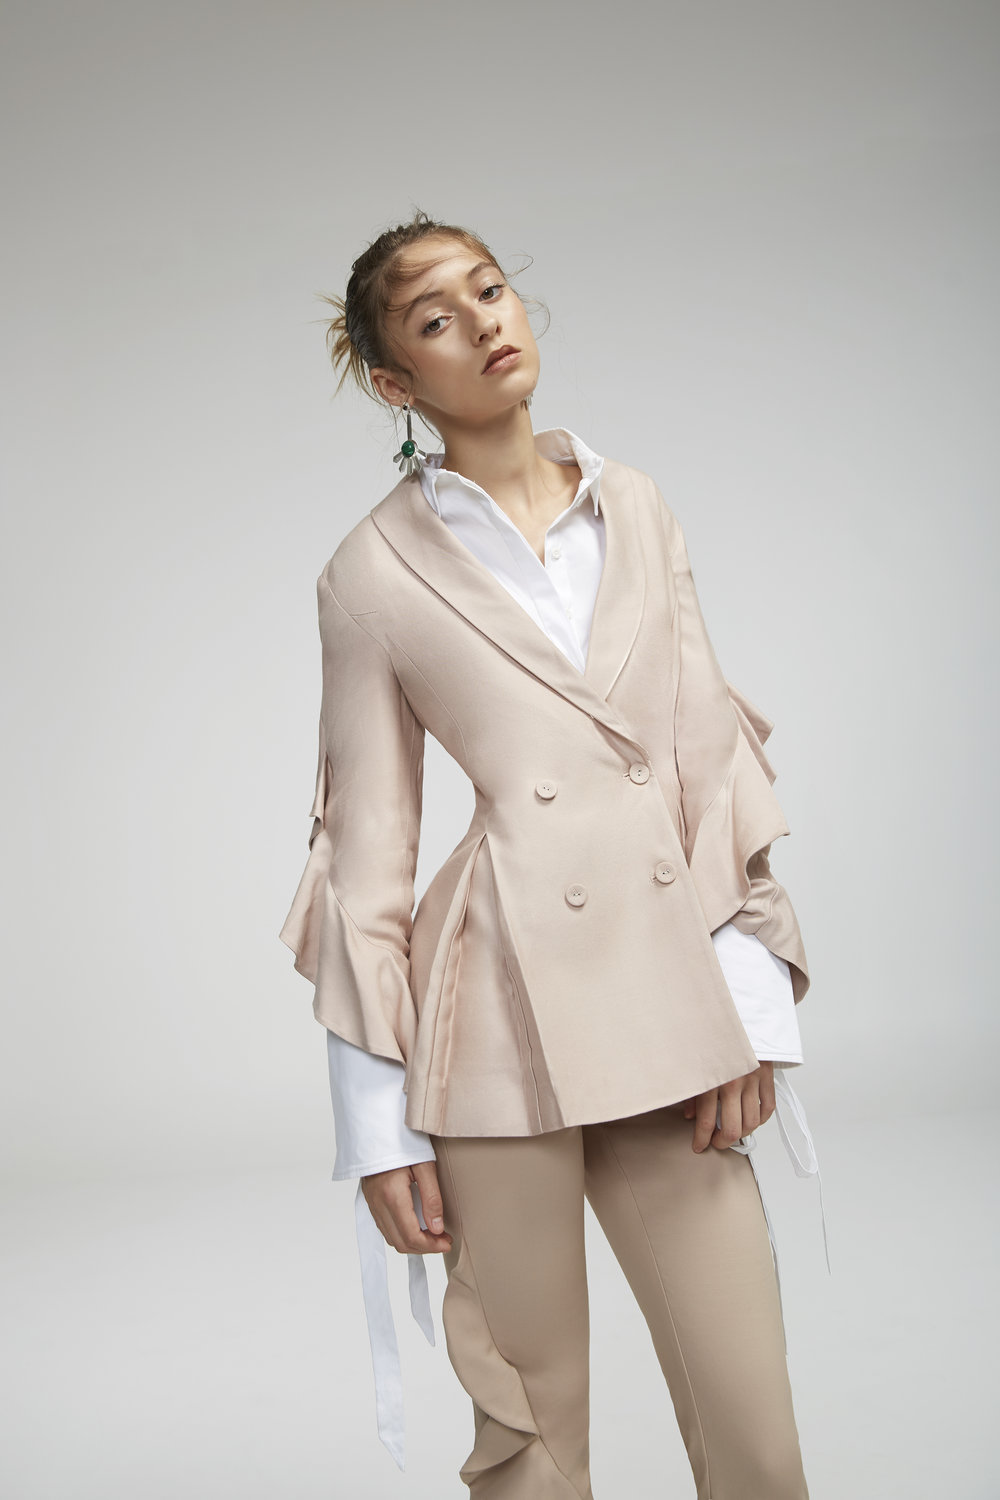 Shop  C/MEO Replay Blazer ,  Objection L/S Shirt  +  Replay Pant .